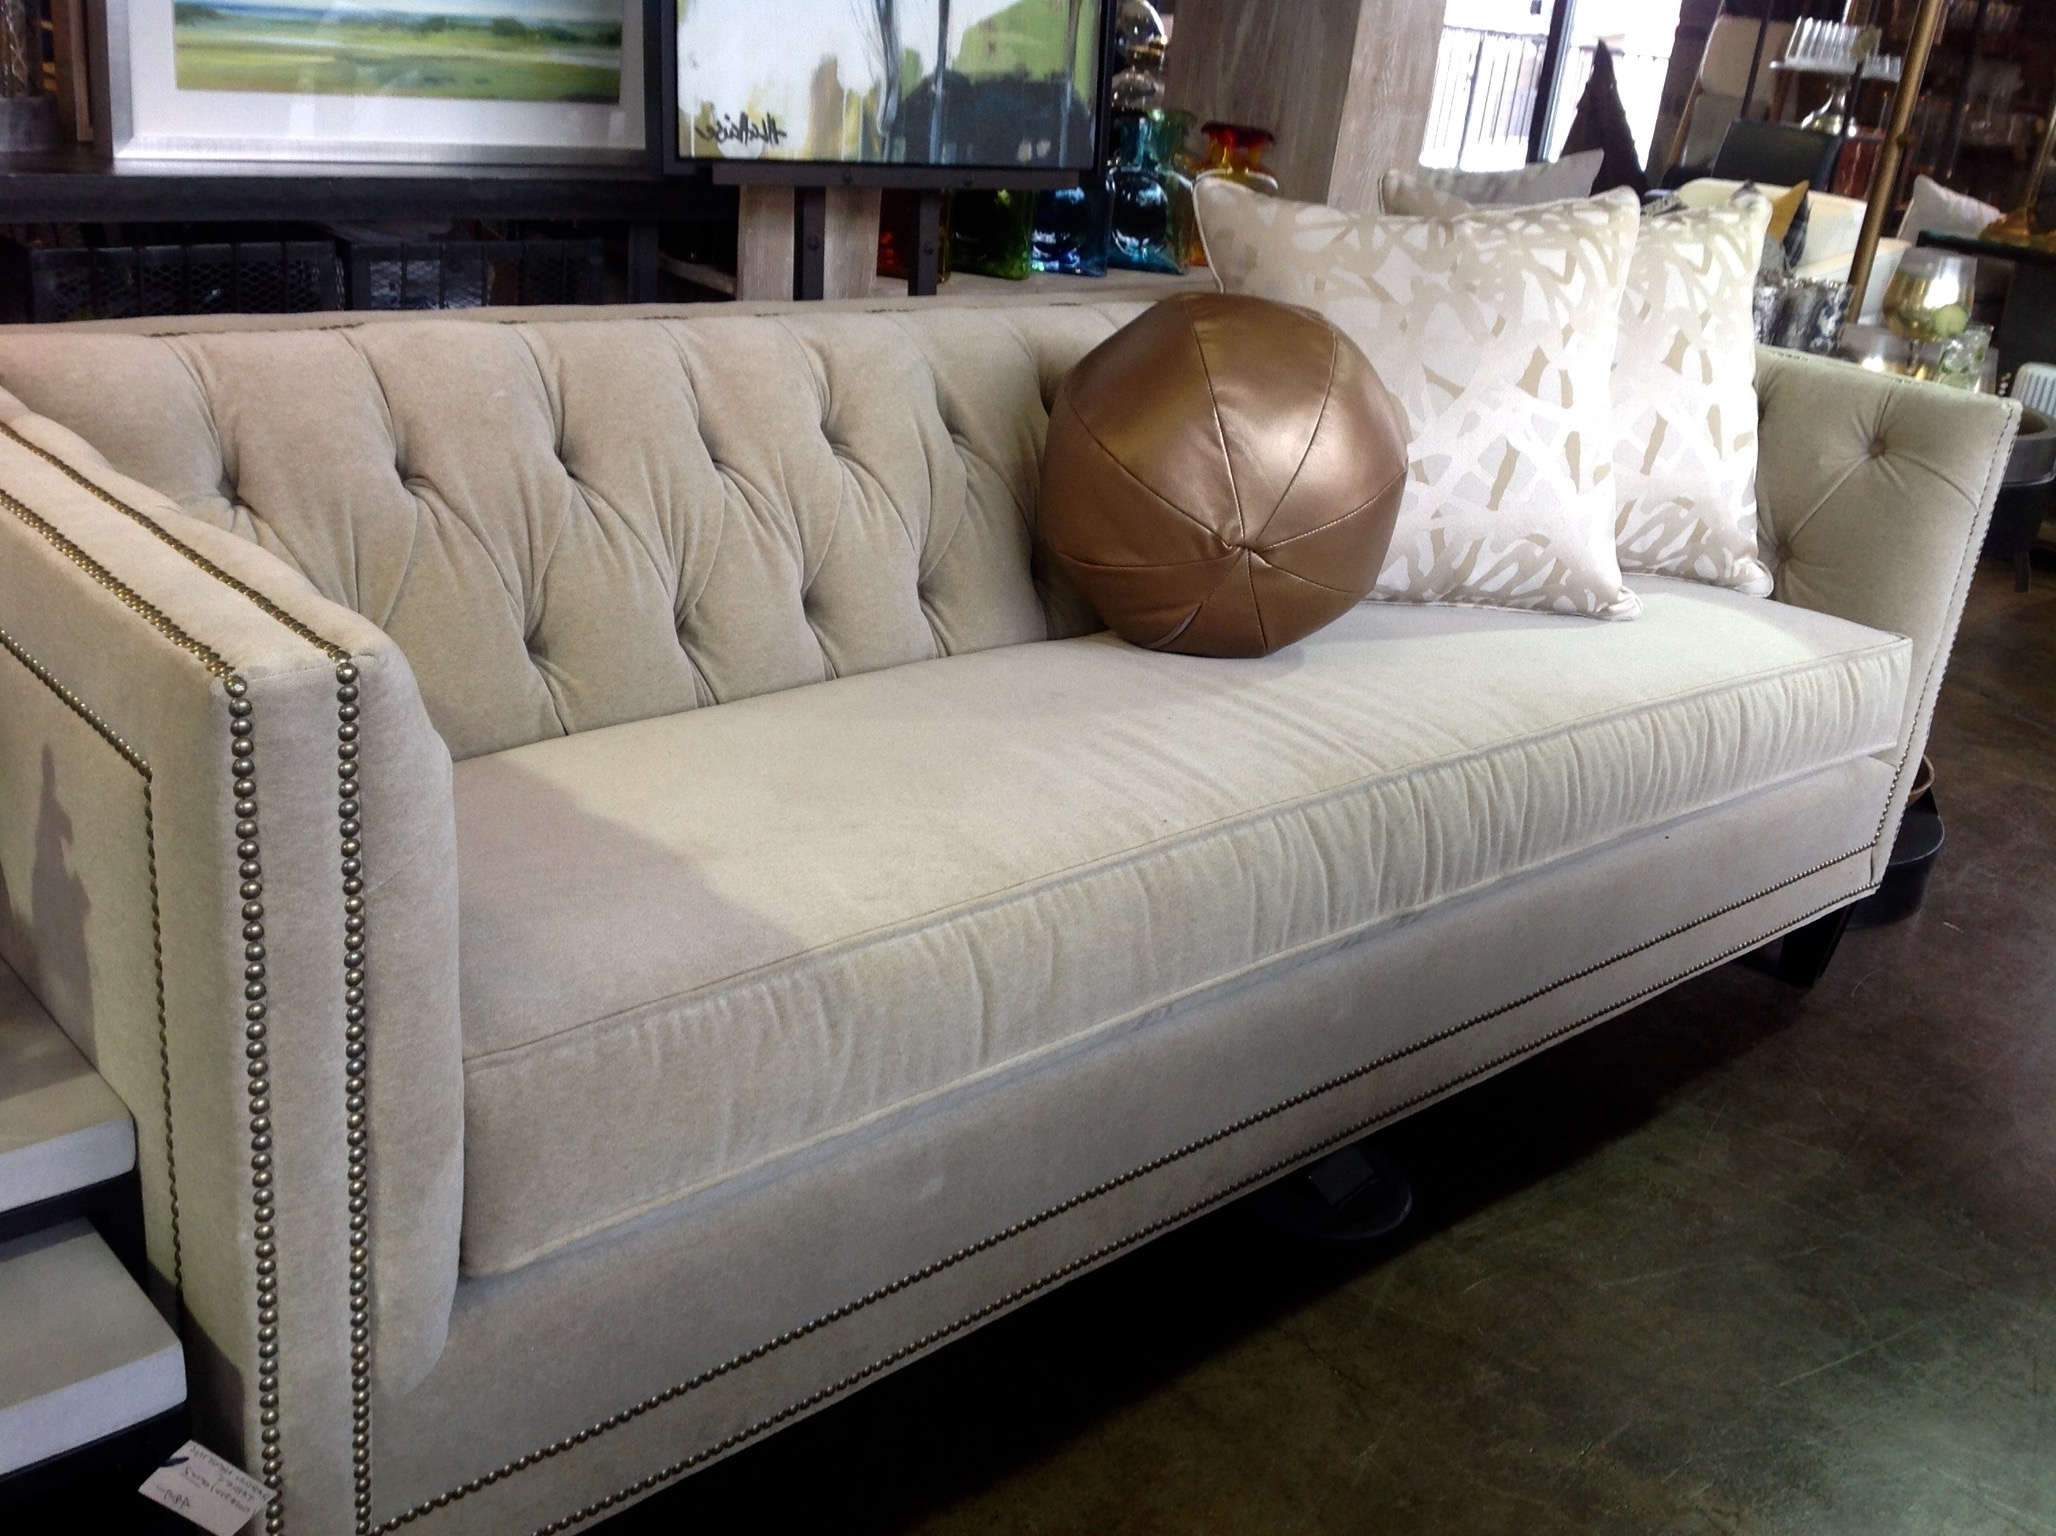 Kaden Sofa - Lulu's Furniture & Decor with Most Up-to-Date Norwalk Sofas